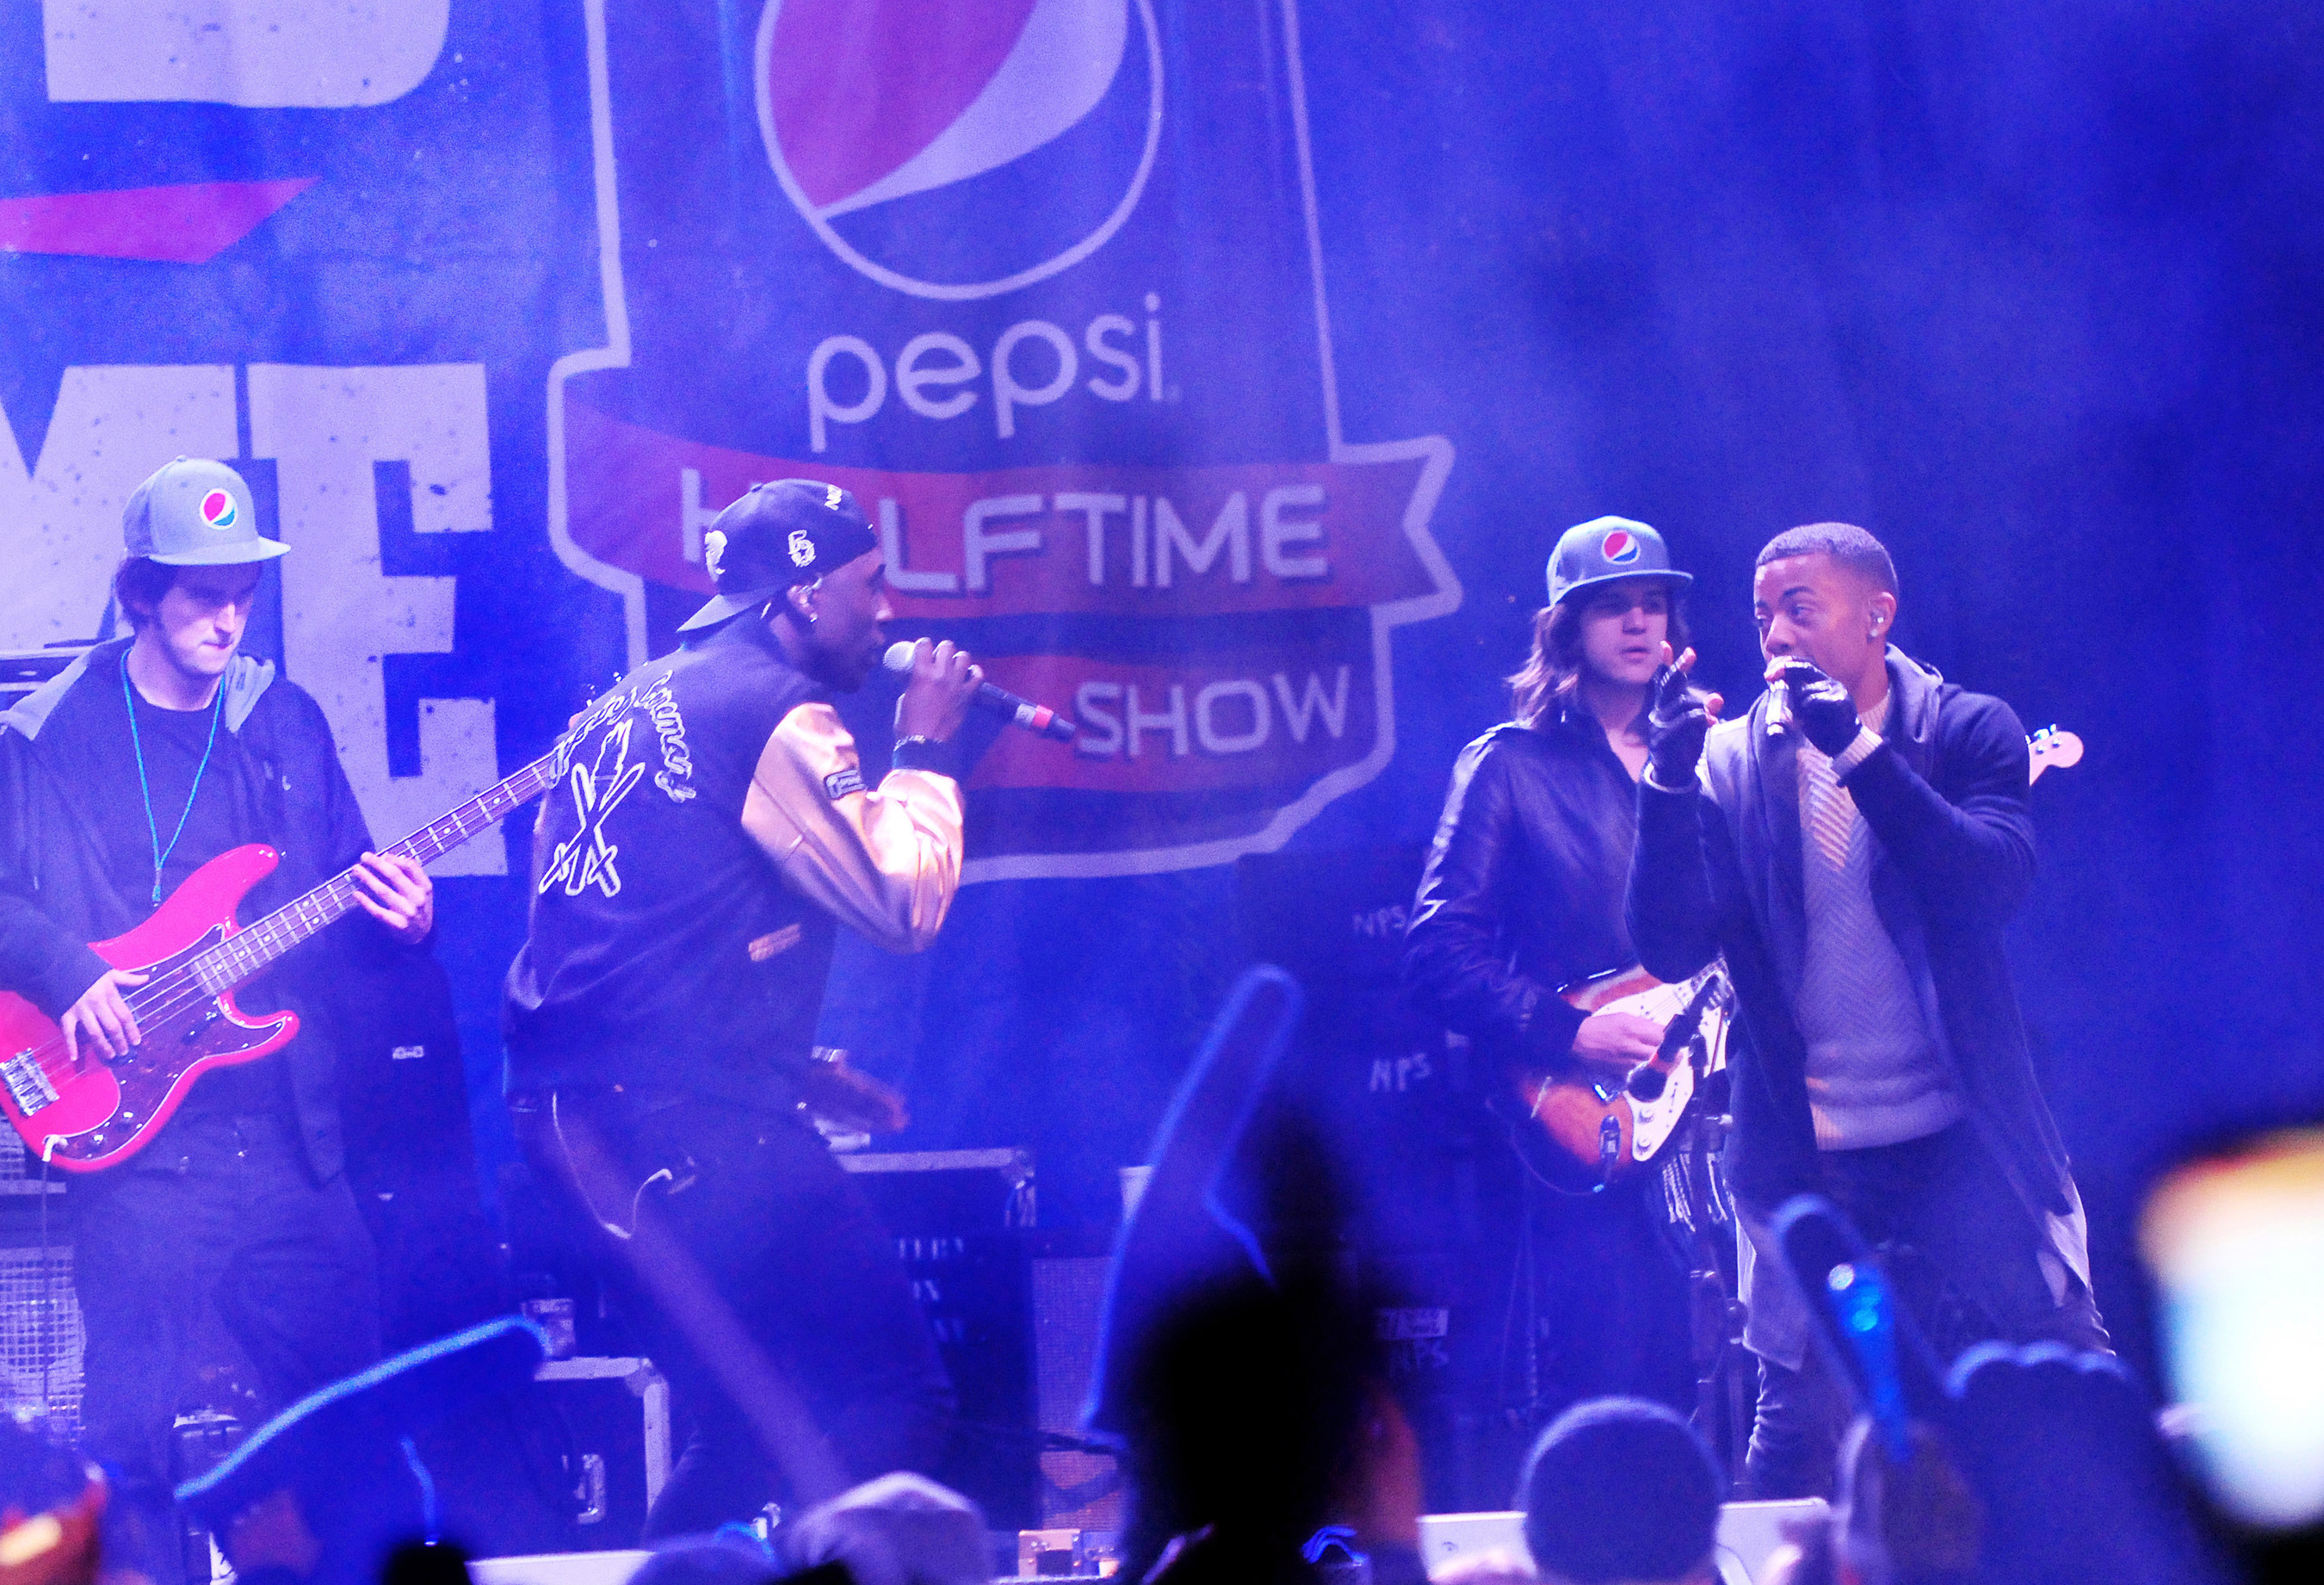 Nico & Vinz brought the magic of a Pepsi Super Bowl Halftime Show to Rochester, New York, the most hyped ...